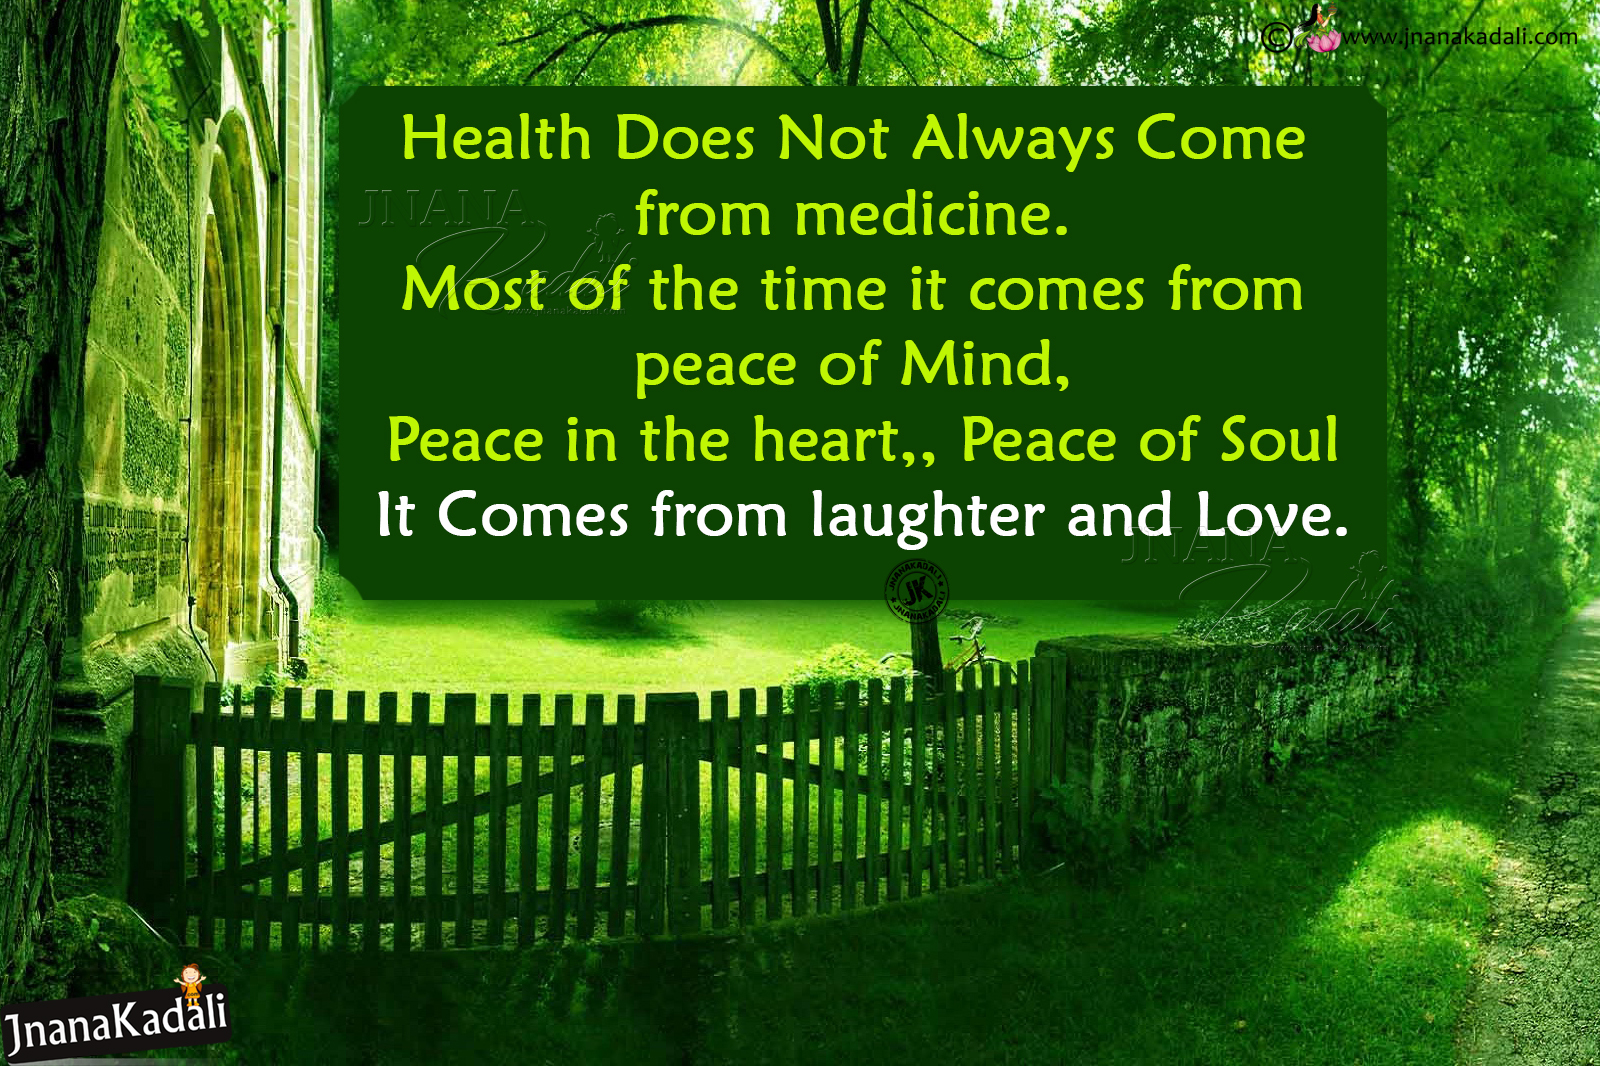 Best Inspirational Quotes in EnglishHealth Quotes in english  JNANA KADALI.COM Telugu Quotes